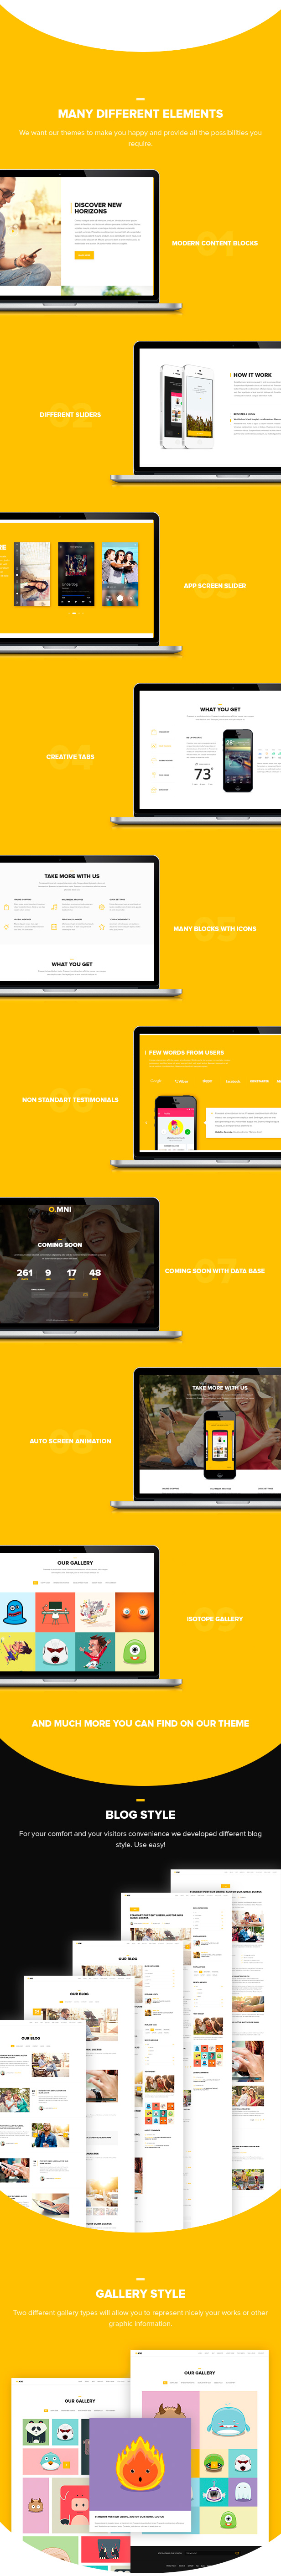 Blog Style, Gallery Style, Different Sliders, App Screen Slider, Creative Tabs, Blocks With Icons, Testimonials, Auto Screen Animation, Isotope Gallery, Coming Soon